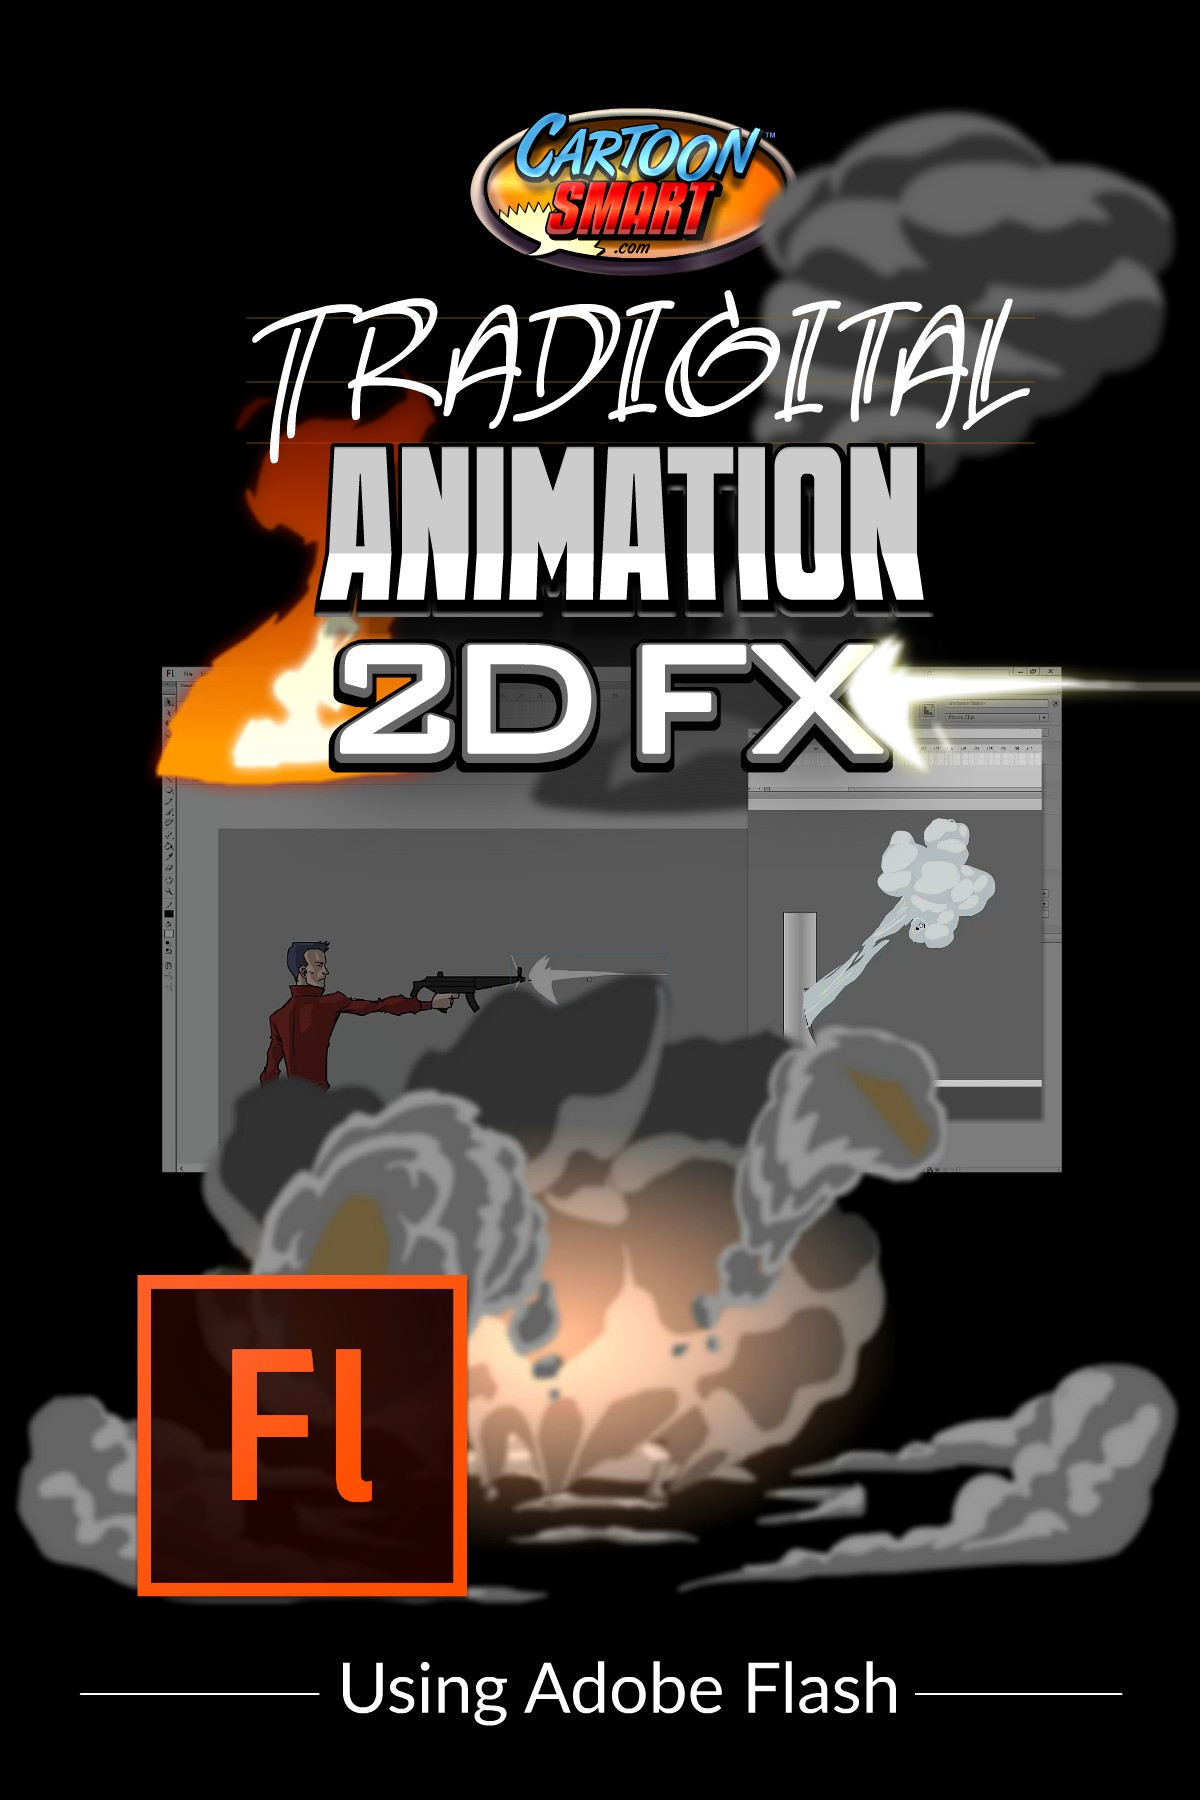 Tradigital Animation 2DFX Tutorial